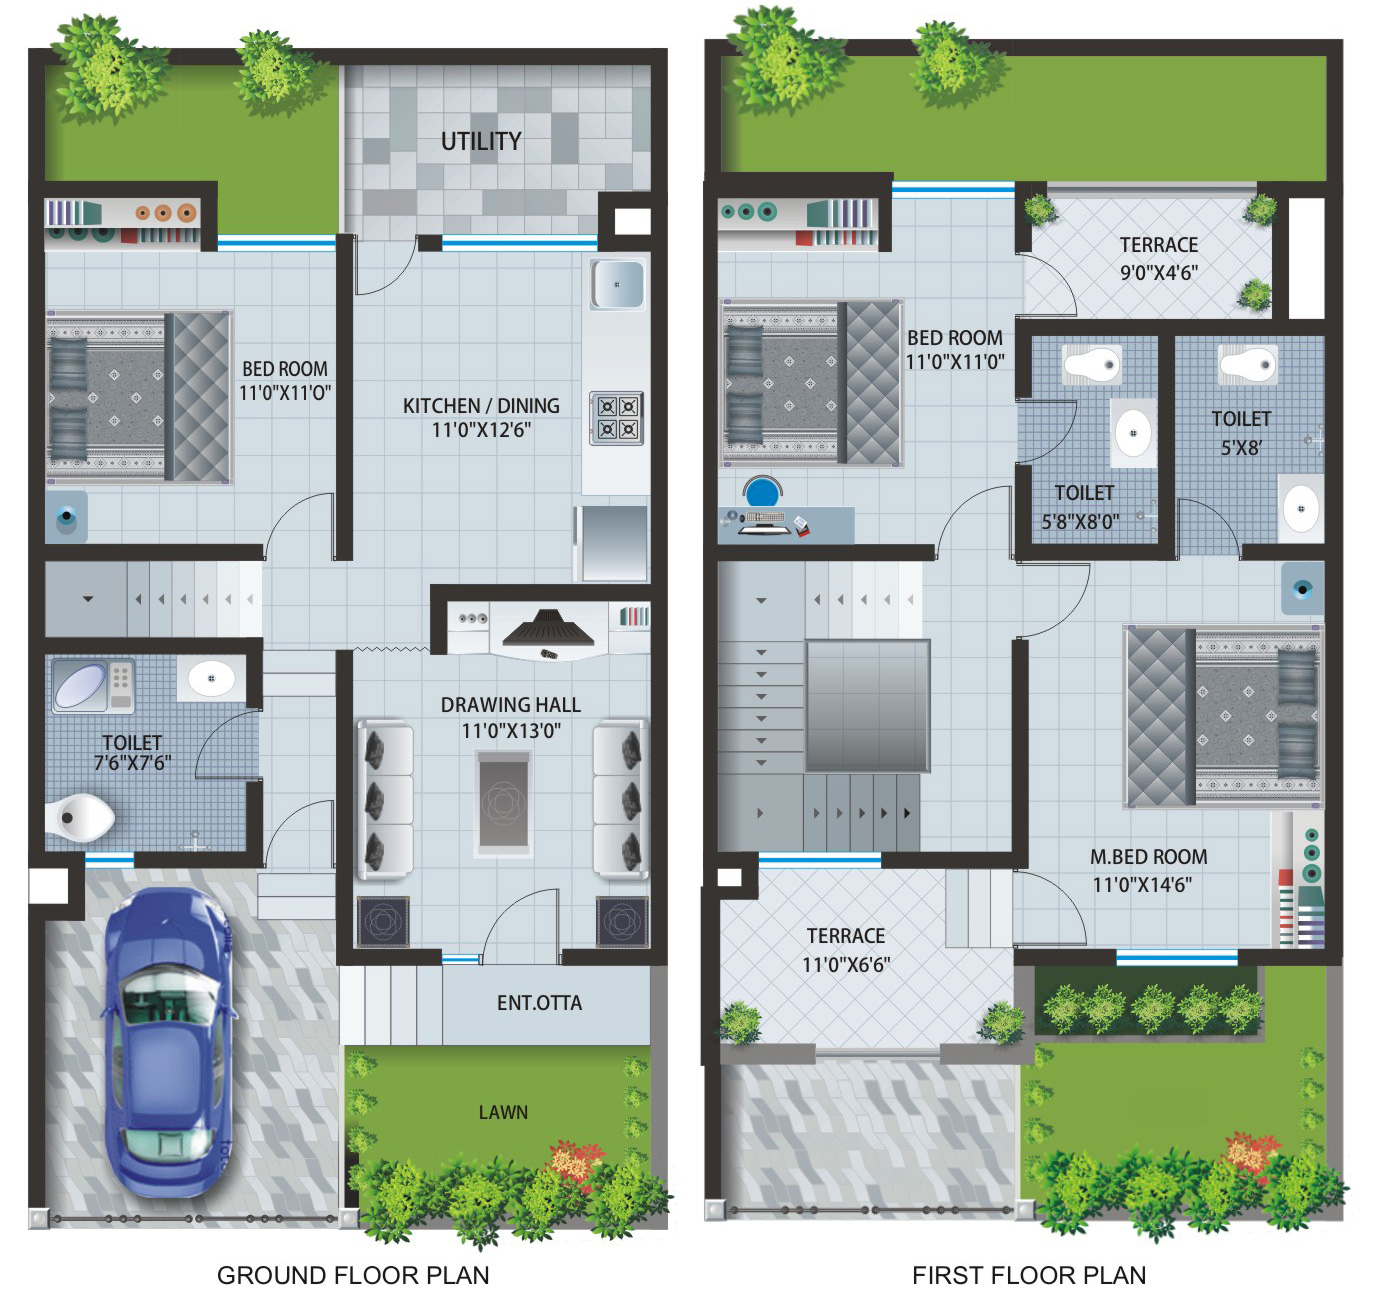 Home Design Plans gpird 003 duplex house 2d Home Design Plan Drawing